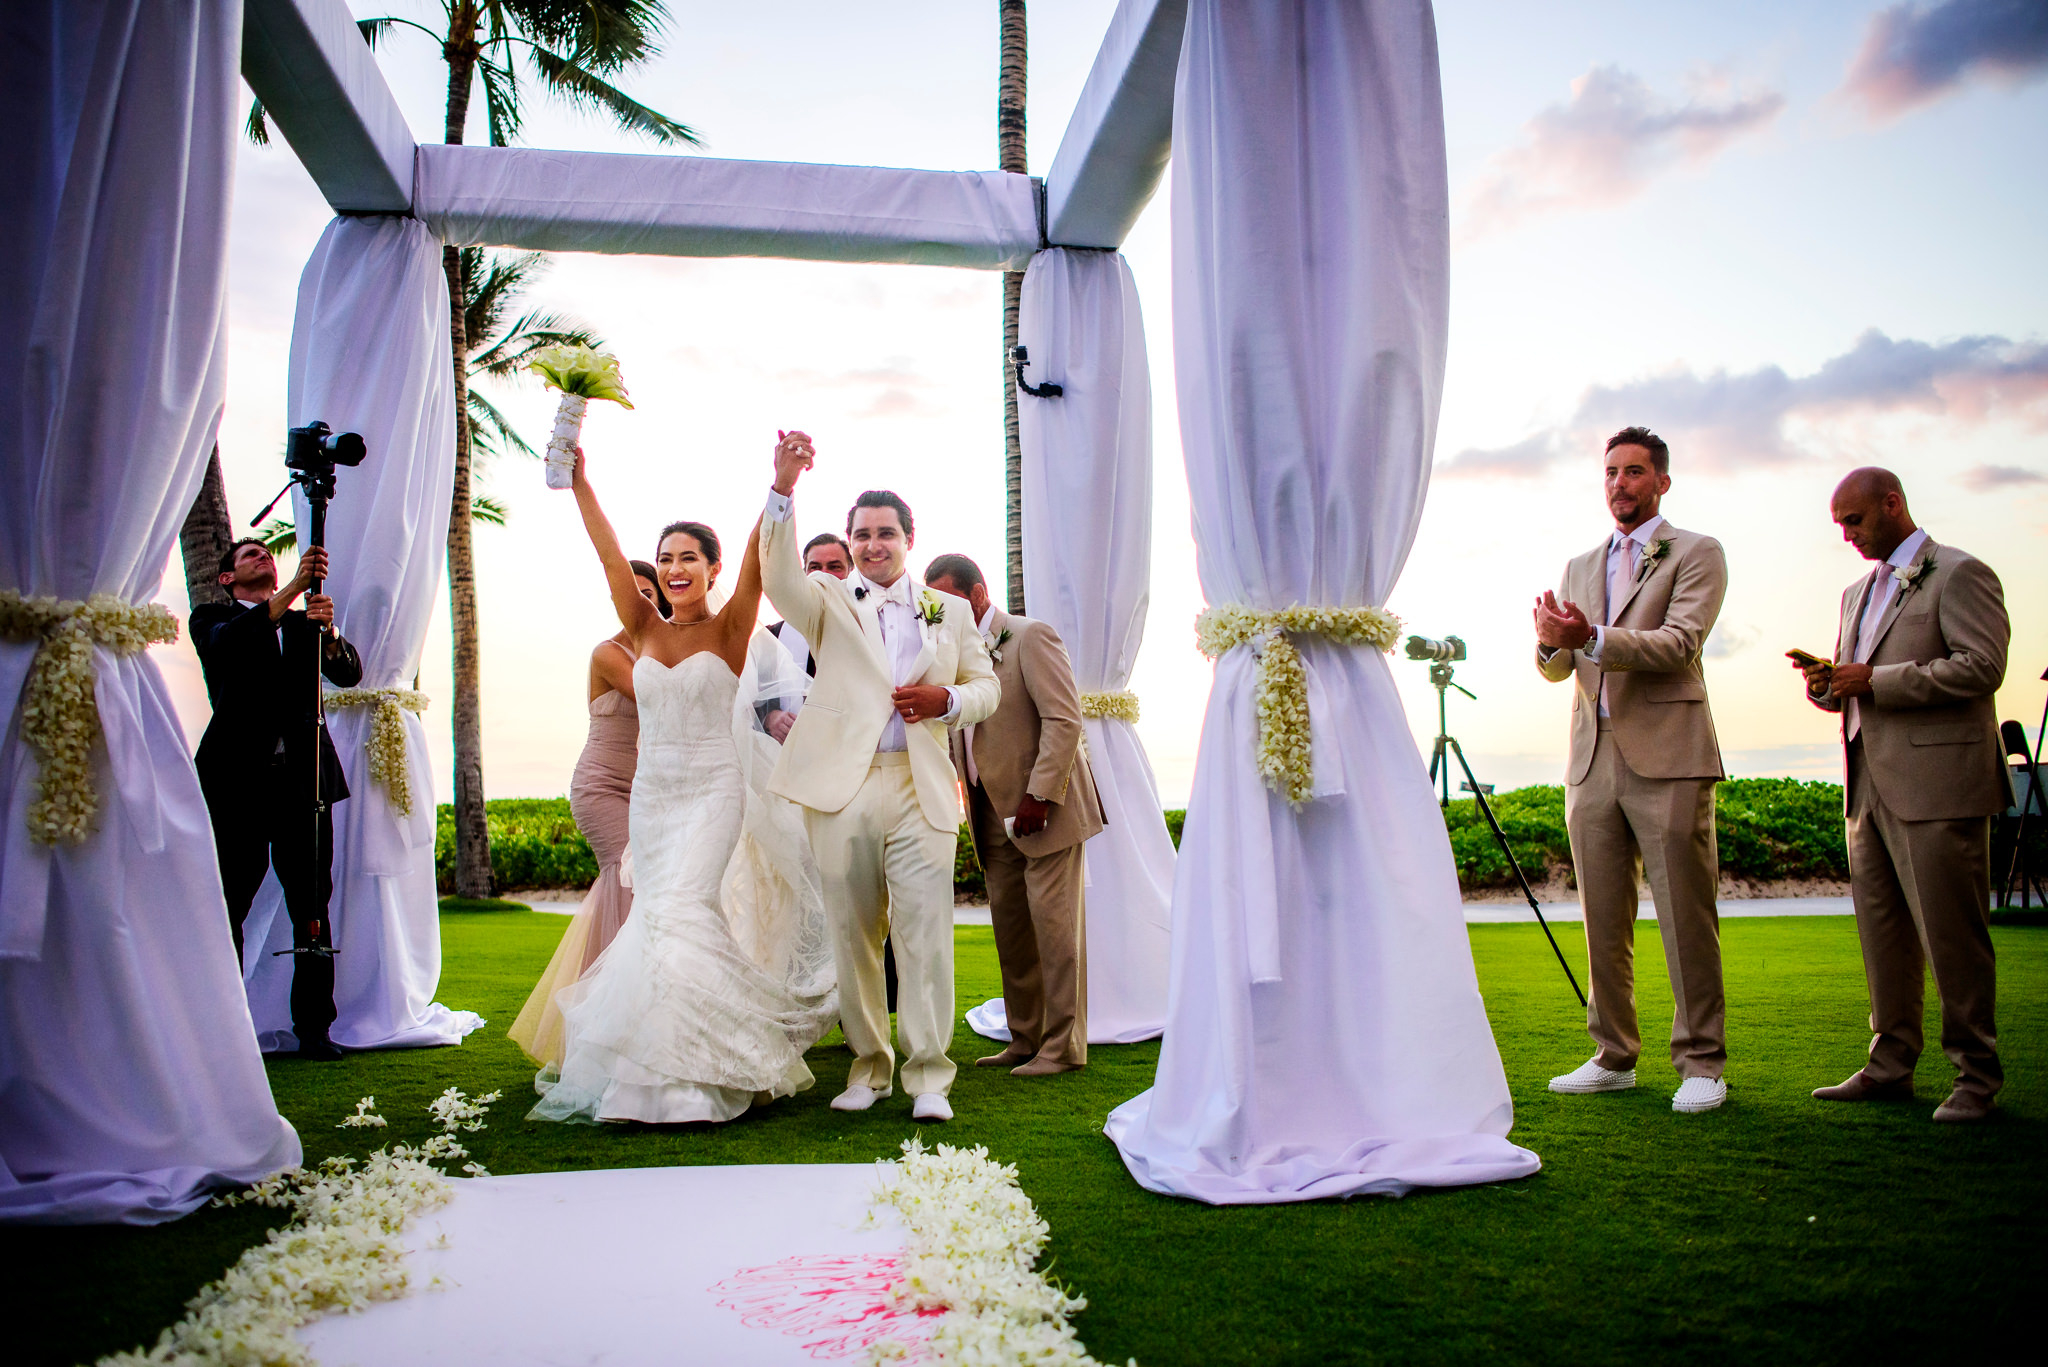 26-ashley-conner-four-seasons-resort-hualalai-wedding